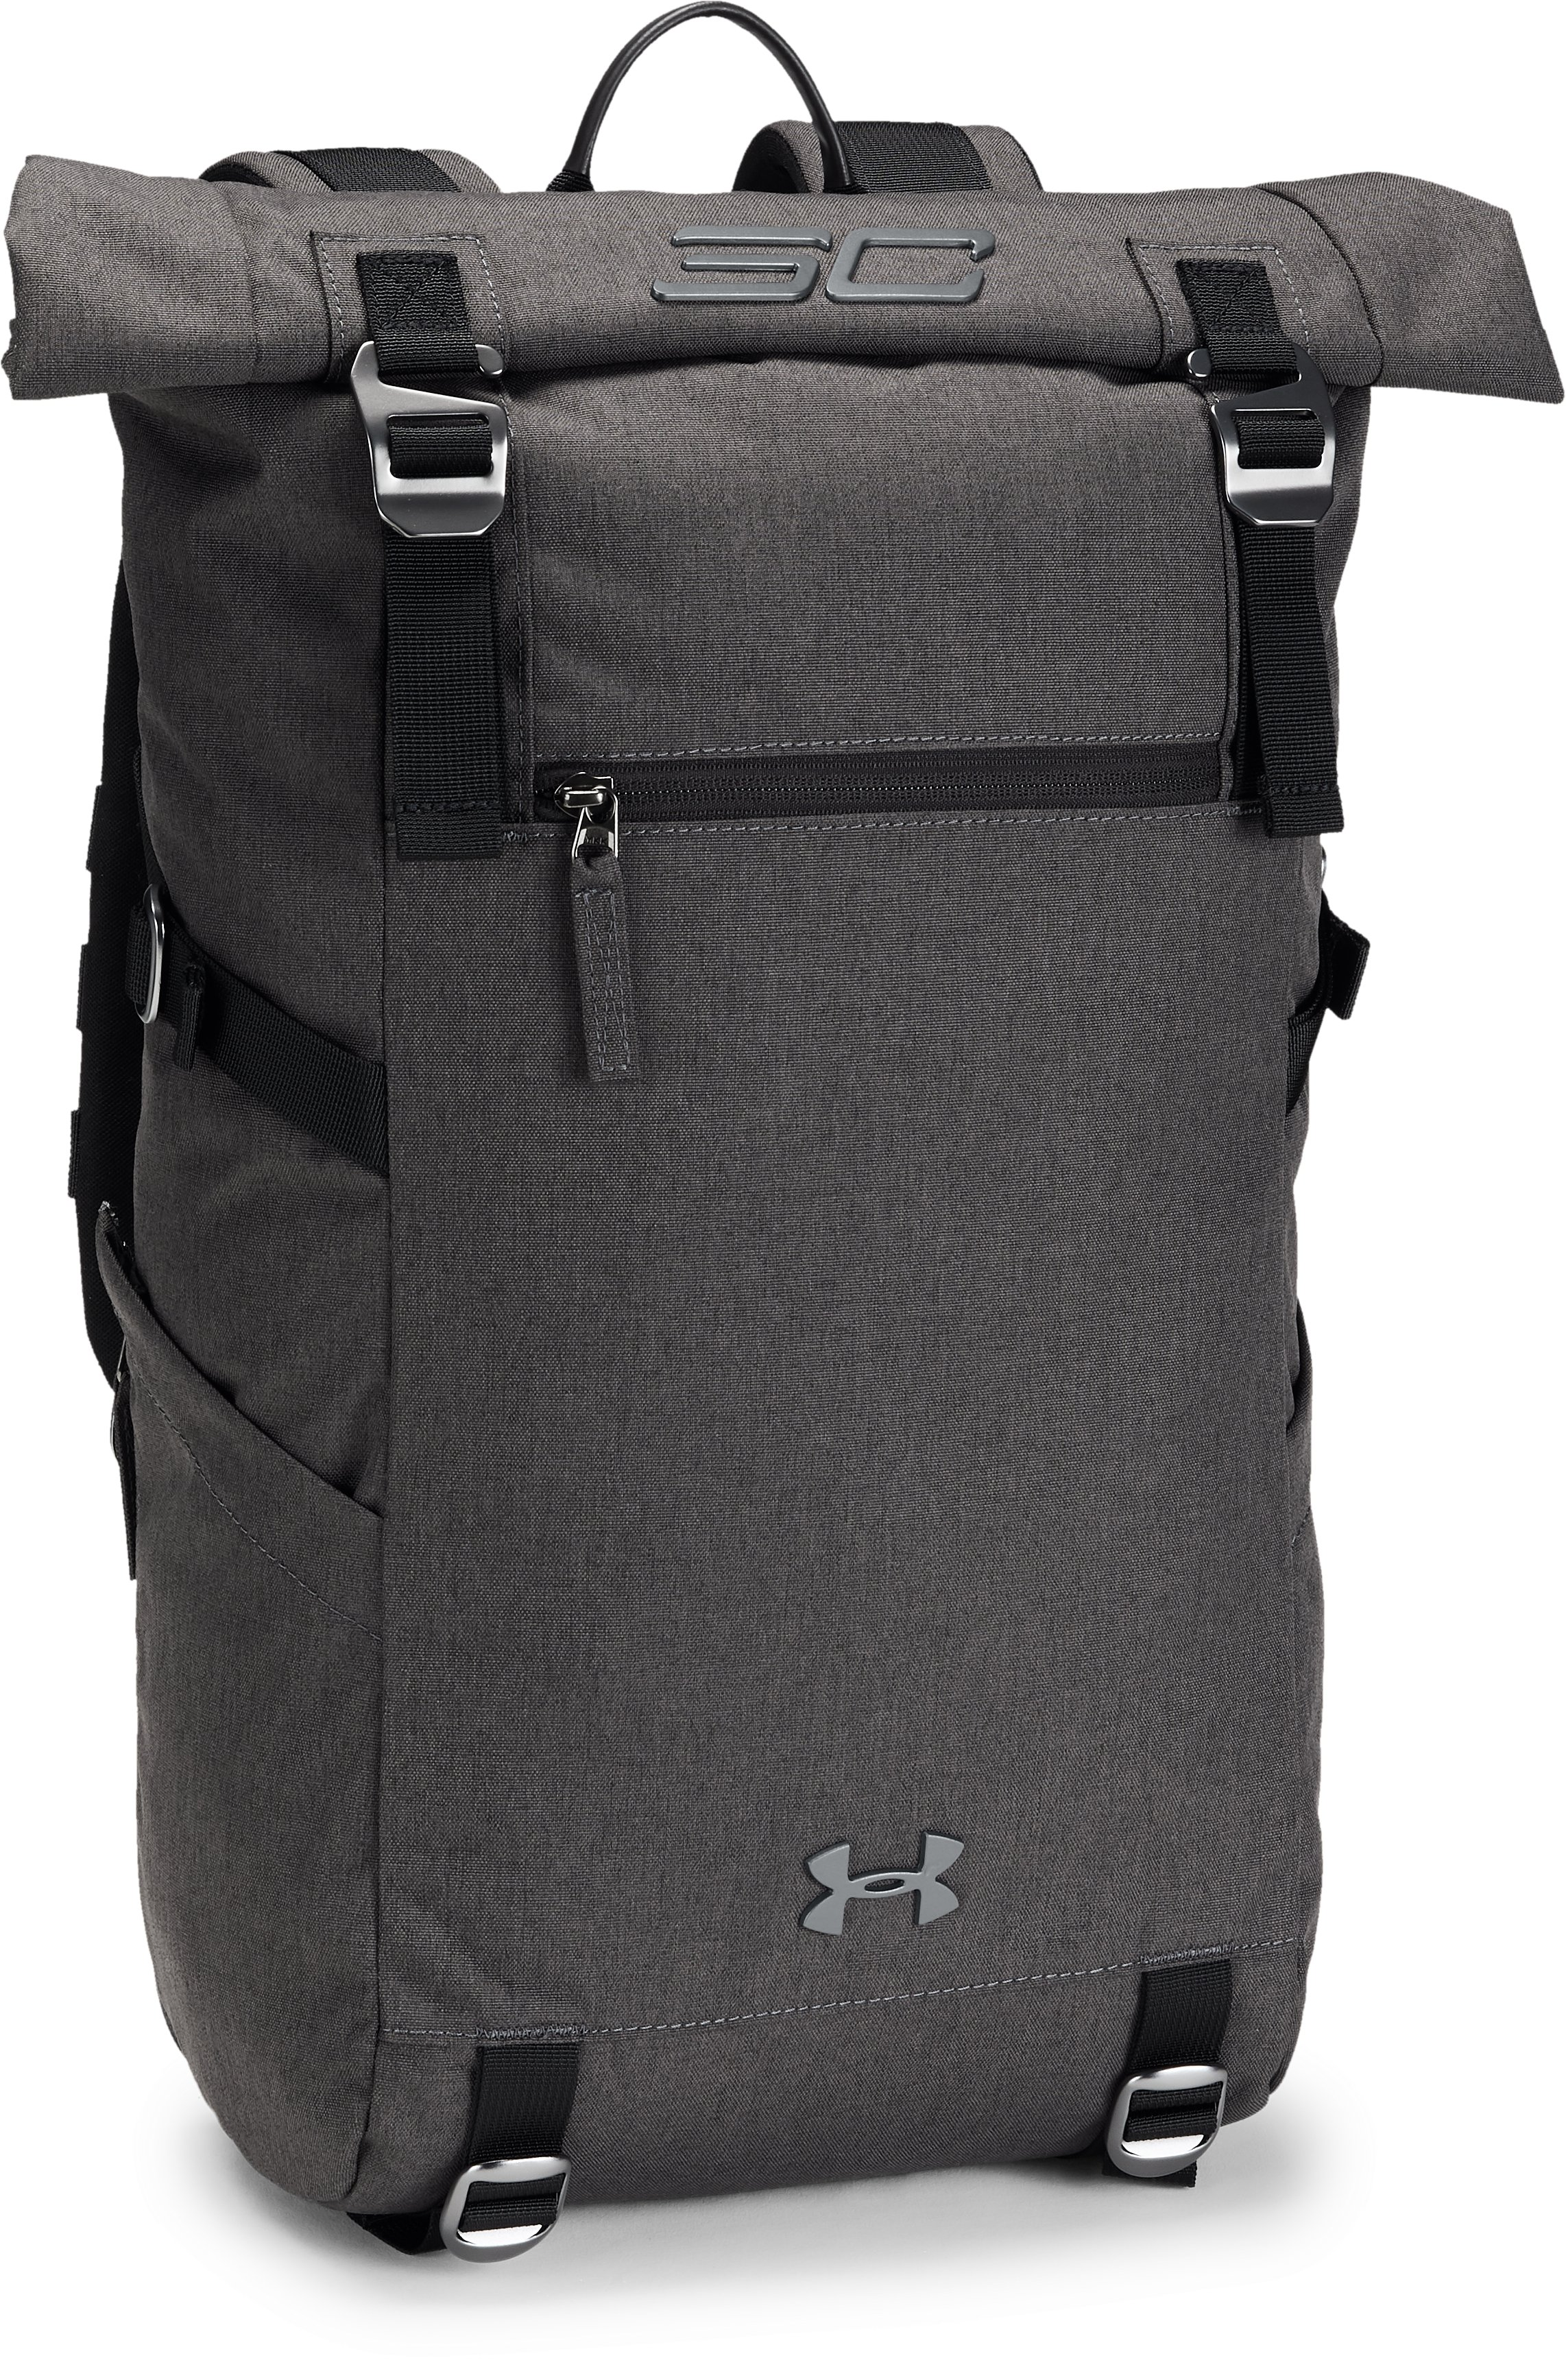 SC30 Signature Rolltop Backpack, BLACK FULL HEATHER,